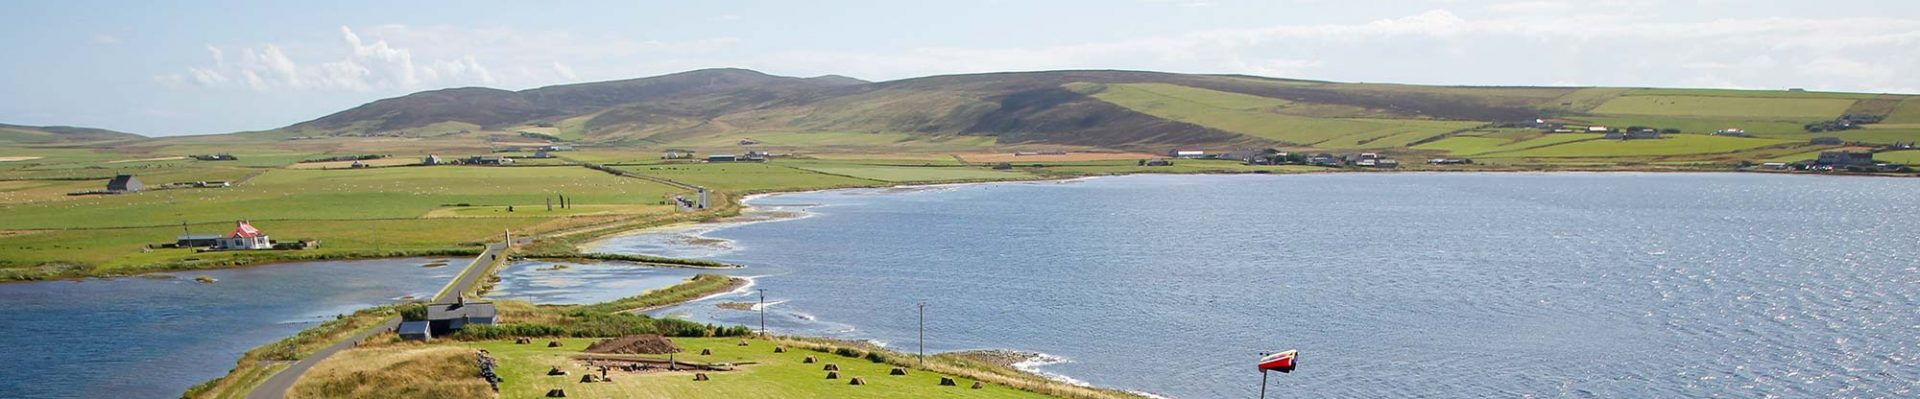 Ness of Brodgar 2016 dig dates confirmed